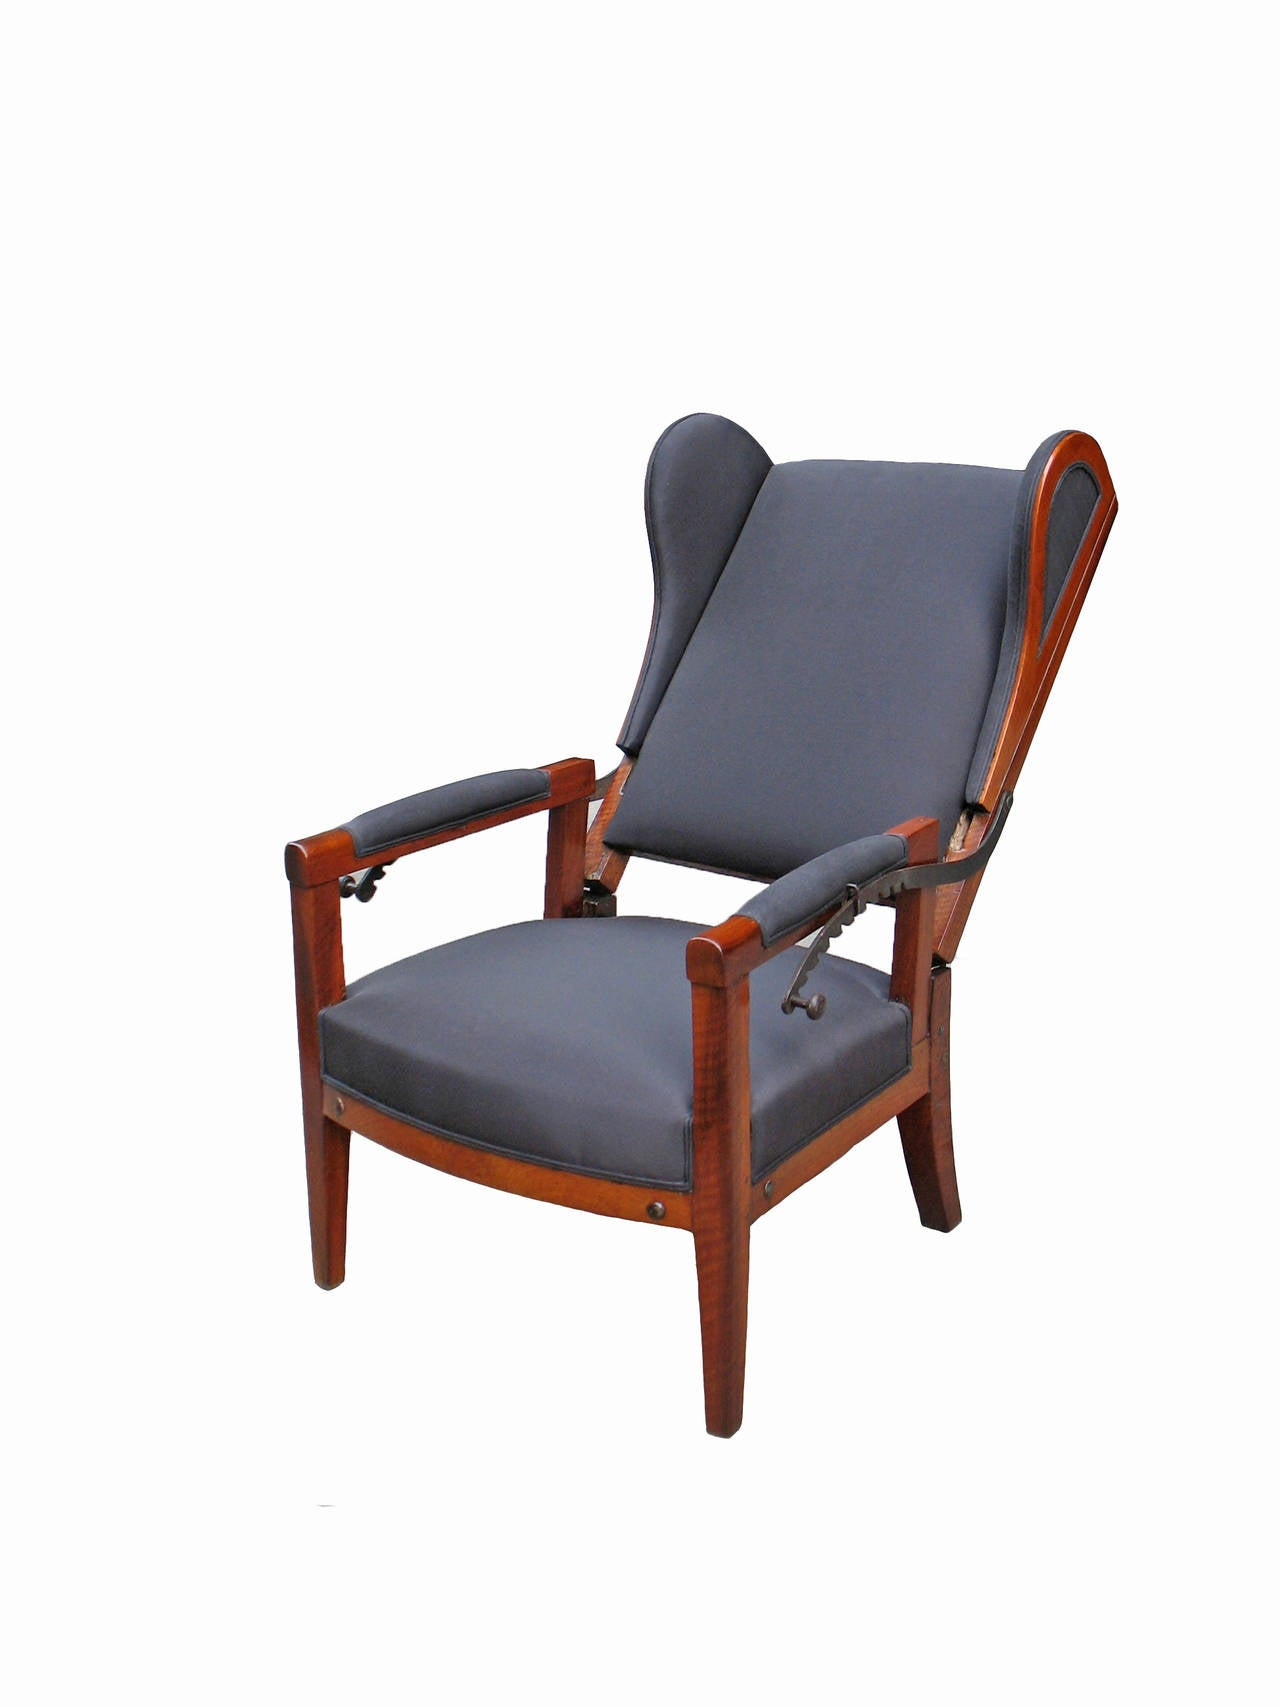 Very Special Biedermeier Reclining Wing Chair For Sale at